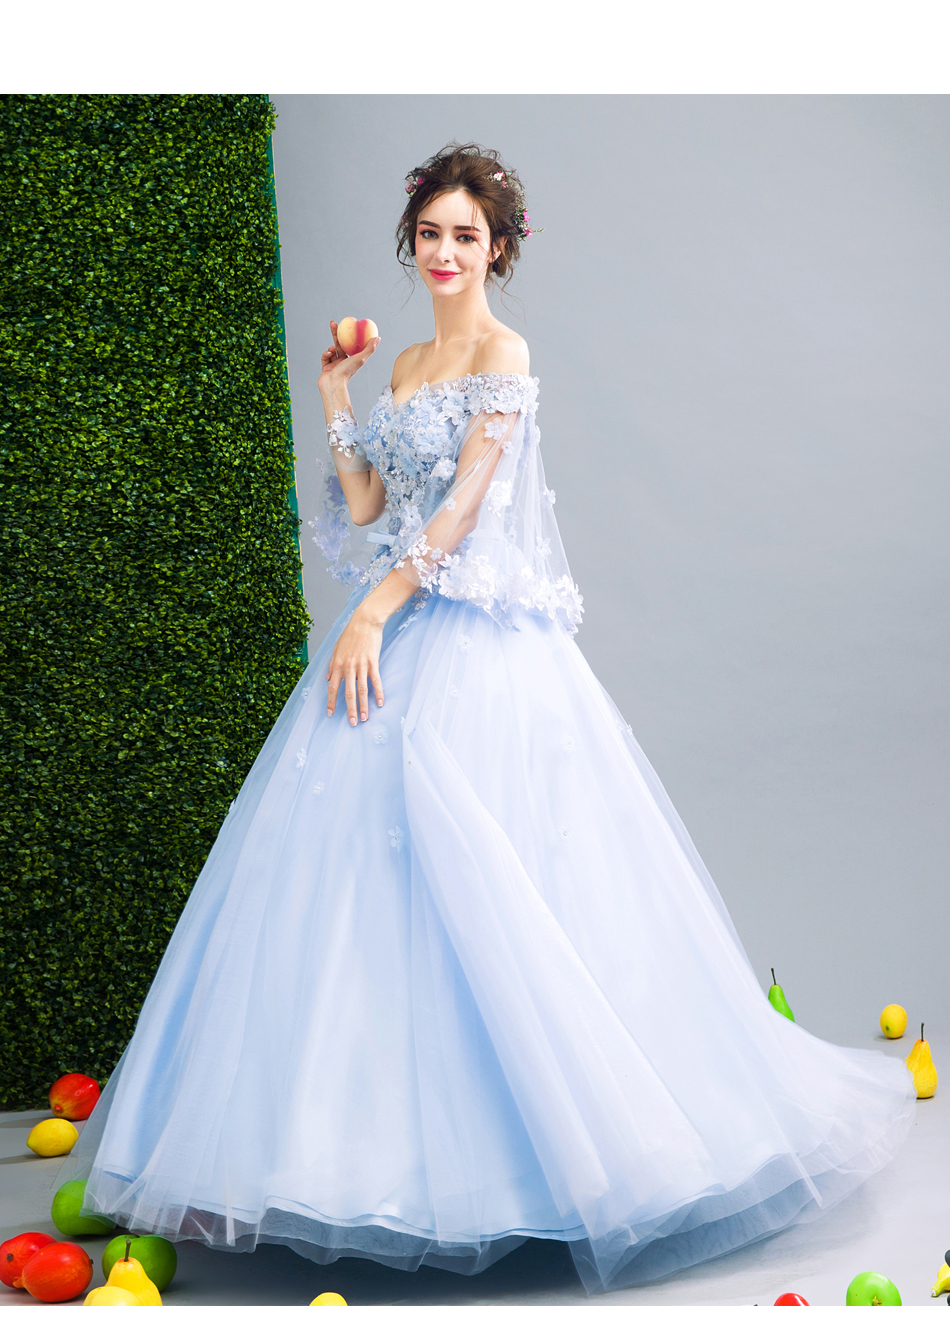 Angel Wedding Dress Marriage Bride Bridal Gown Vestido De Noiva Fairy, blue, handmade petals 2017 257 19